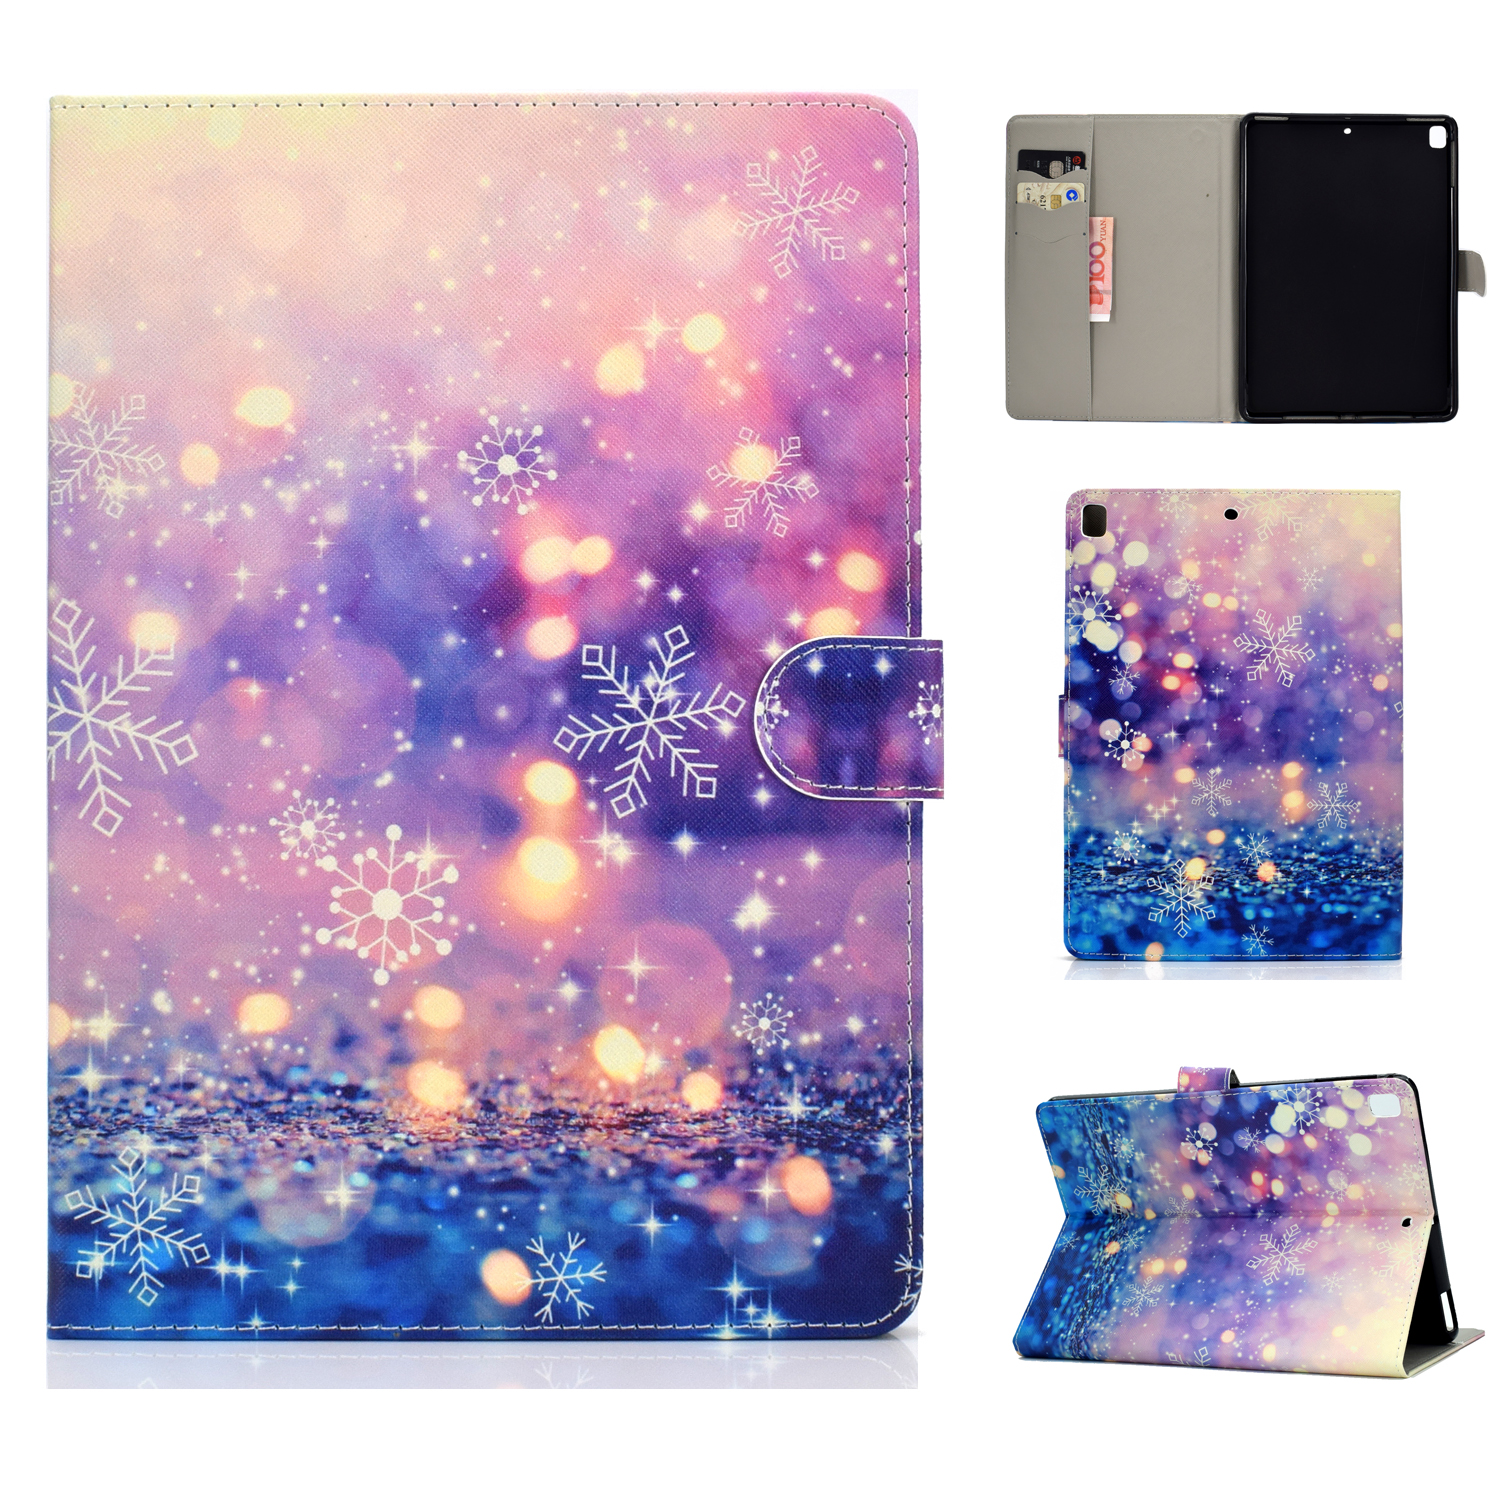 For iPad 5/6/7/8/9-iPad Pro9.7-iPad 9.7 Laptop Protective Case Color Painted Smart Stay PU Cover Purple quicksand